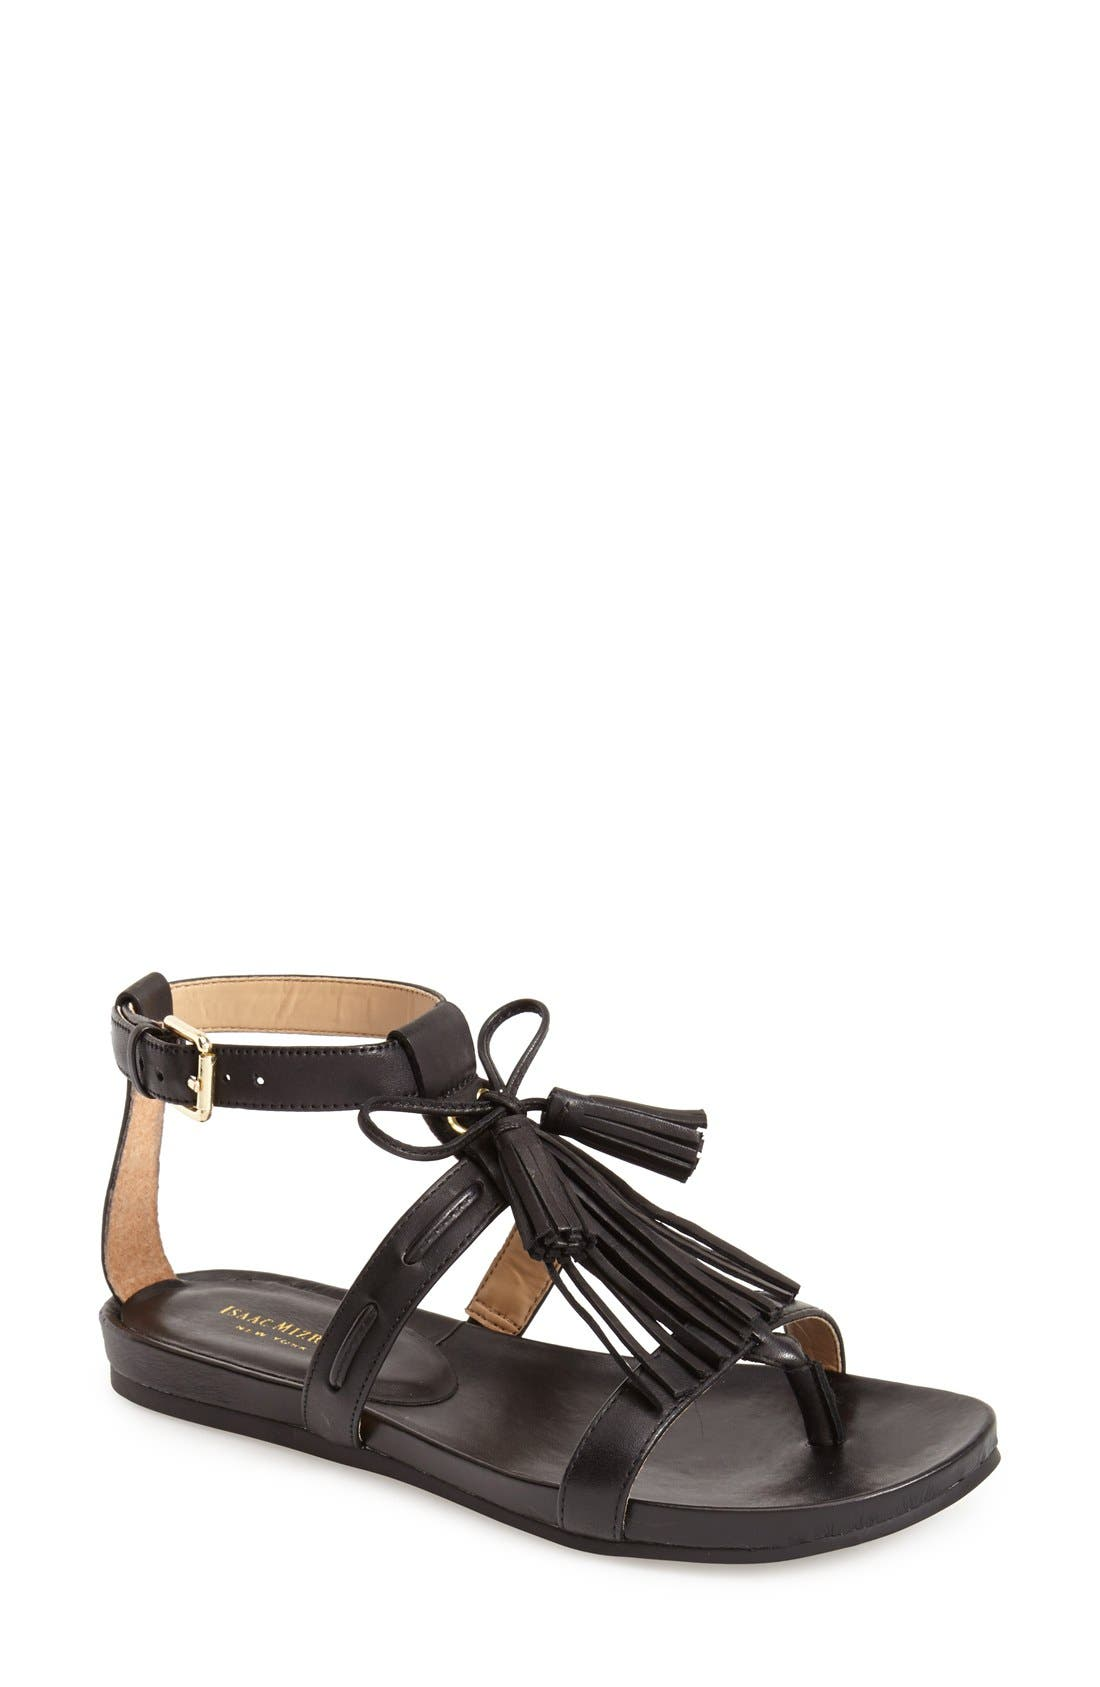 'Primp' Leather Fringe Sandal, Main, color, 001